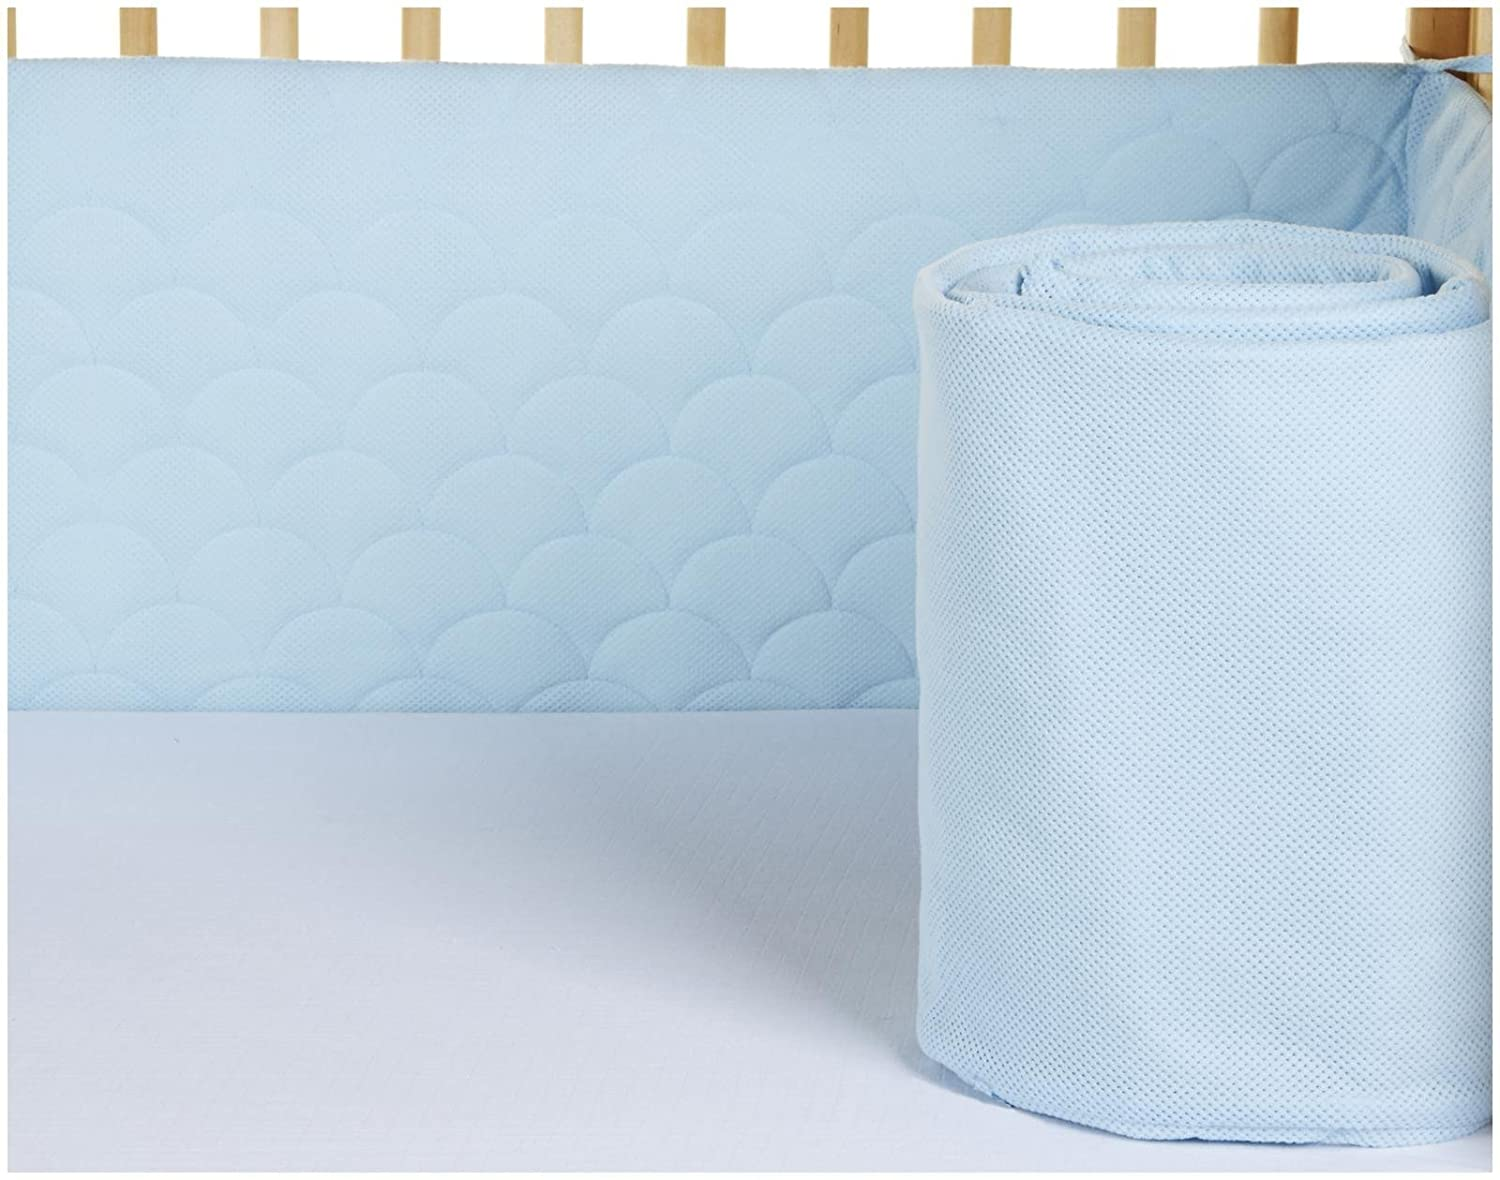 Lifenest Breathable & Padded Mesh Crib Liner - Blue 4335358037